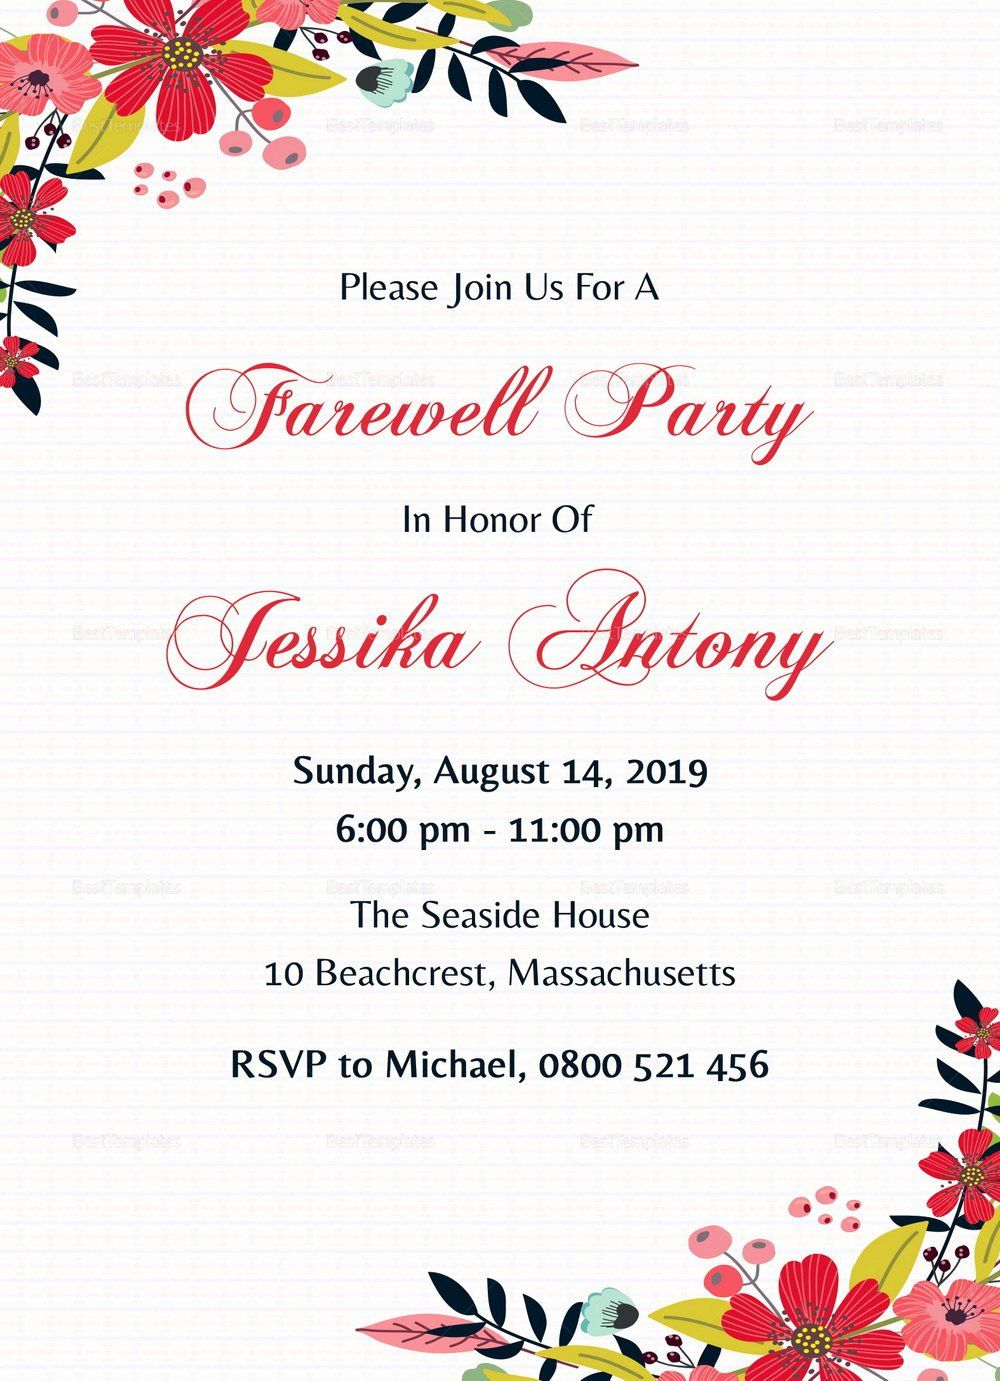 The Amazing Stupendous Farewell Party Invitation Template Free Ideas Pertaining To Fa Party Invite Template Farewell Party Invitations Farewell Invitation Card